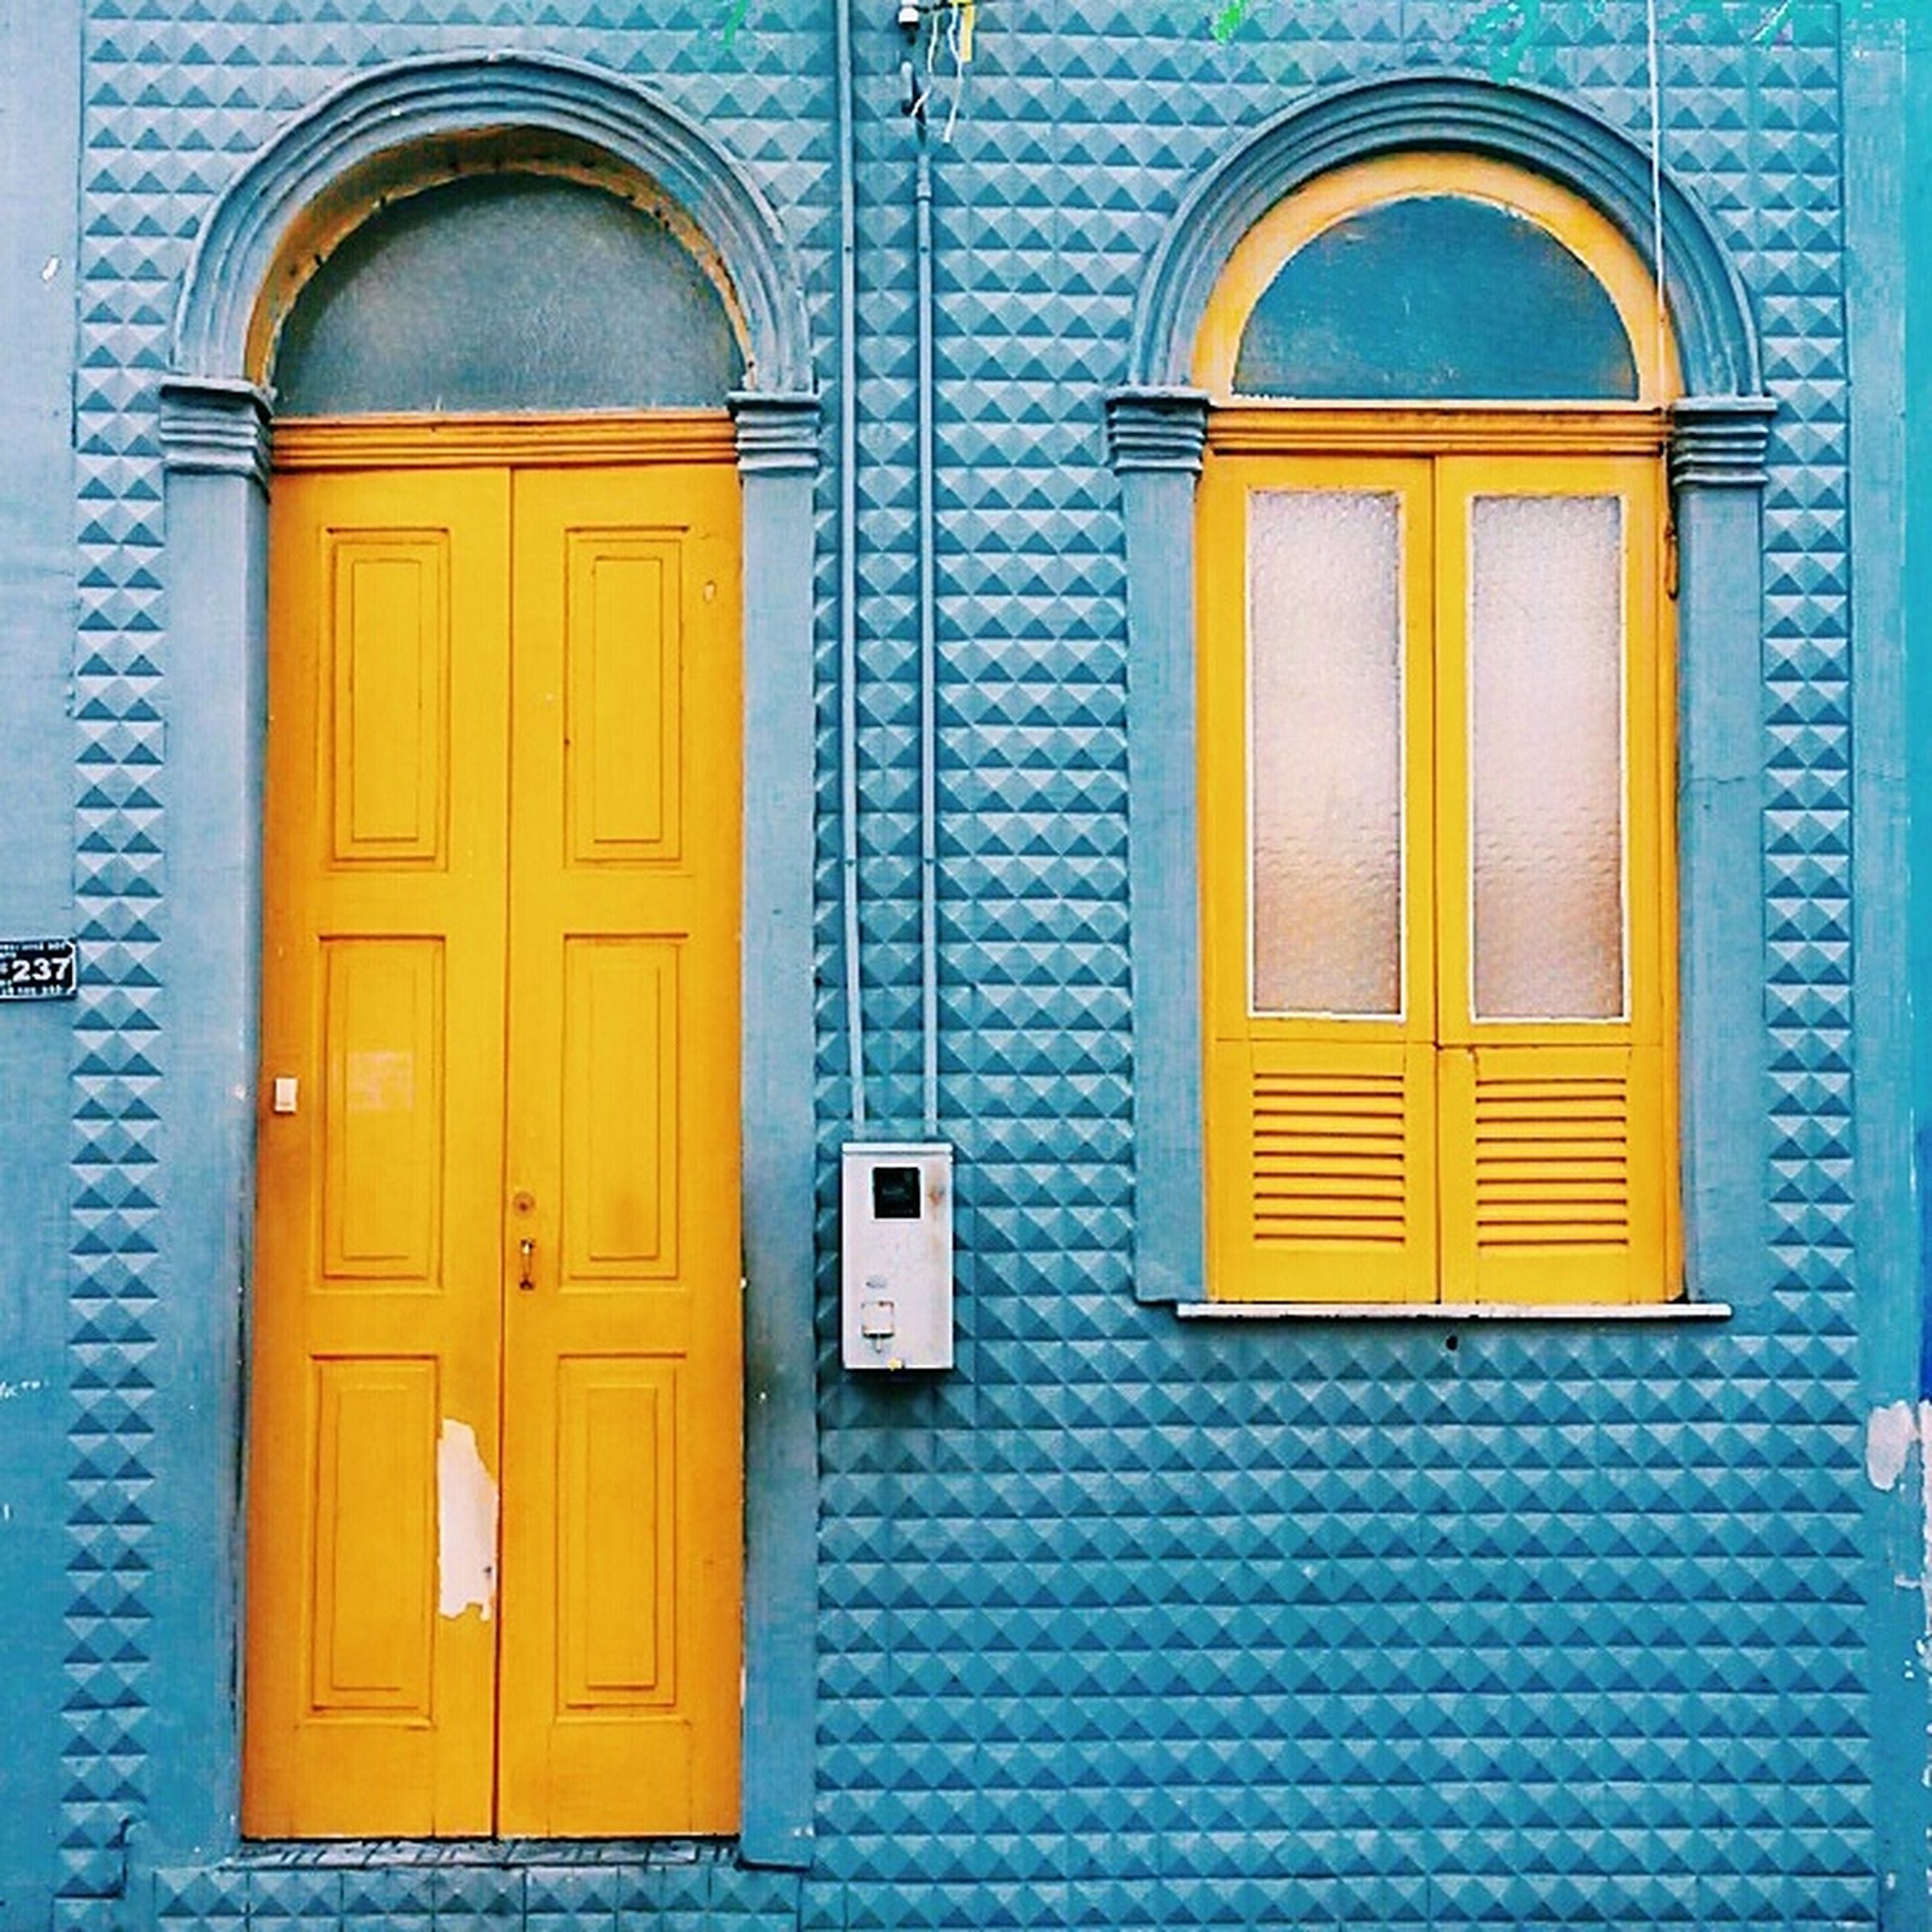 window, building exterior, closed, architecture, door, built structure, yellow, arch, house, entrance, protection, safety, residential structure, facade, residential building, outdoors, day, security, shutter, wood - material